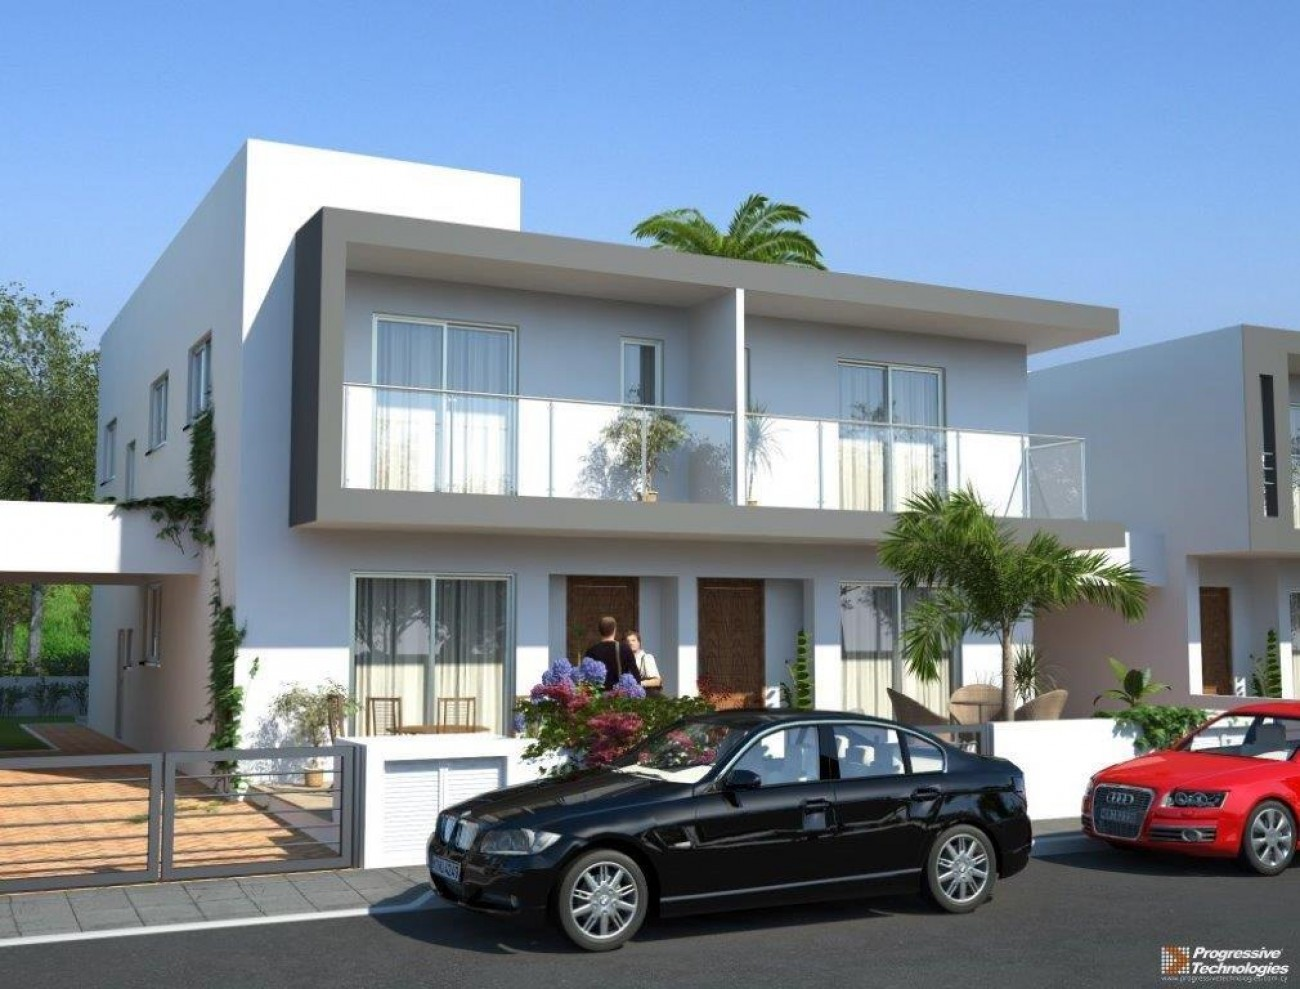 Villa for Sale in Perivolia, Larnaka, Cyprus